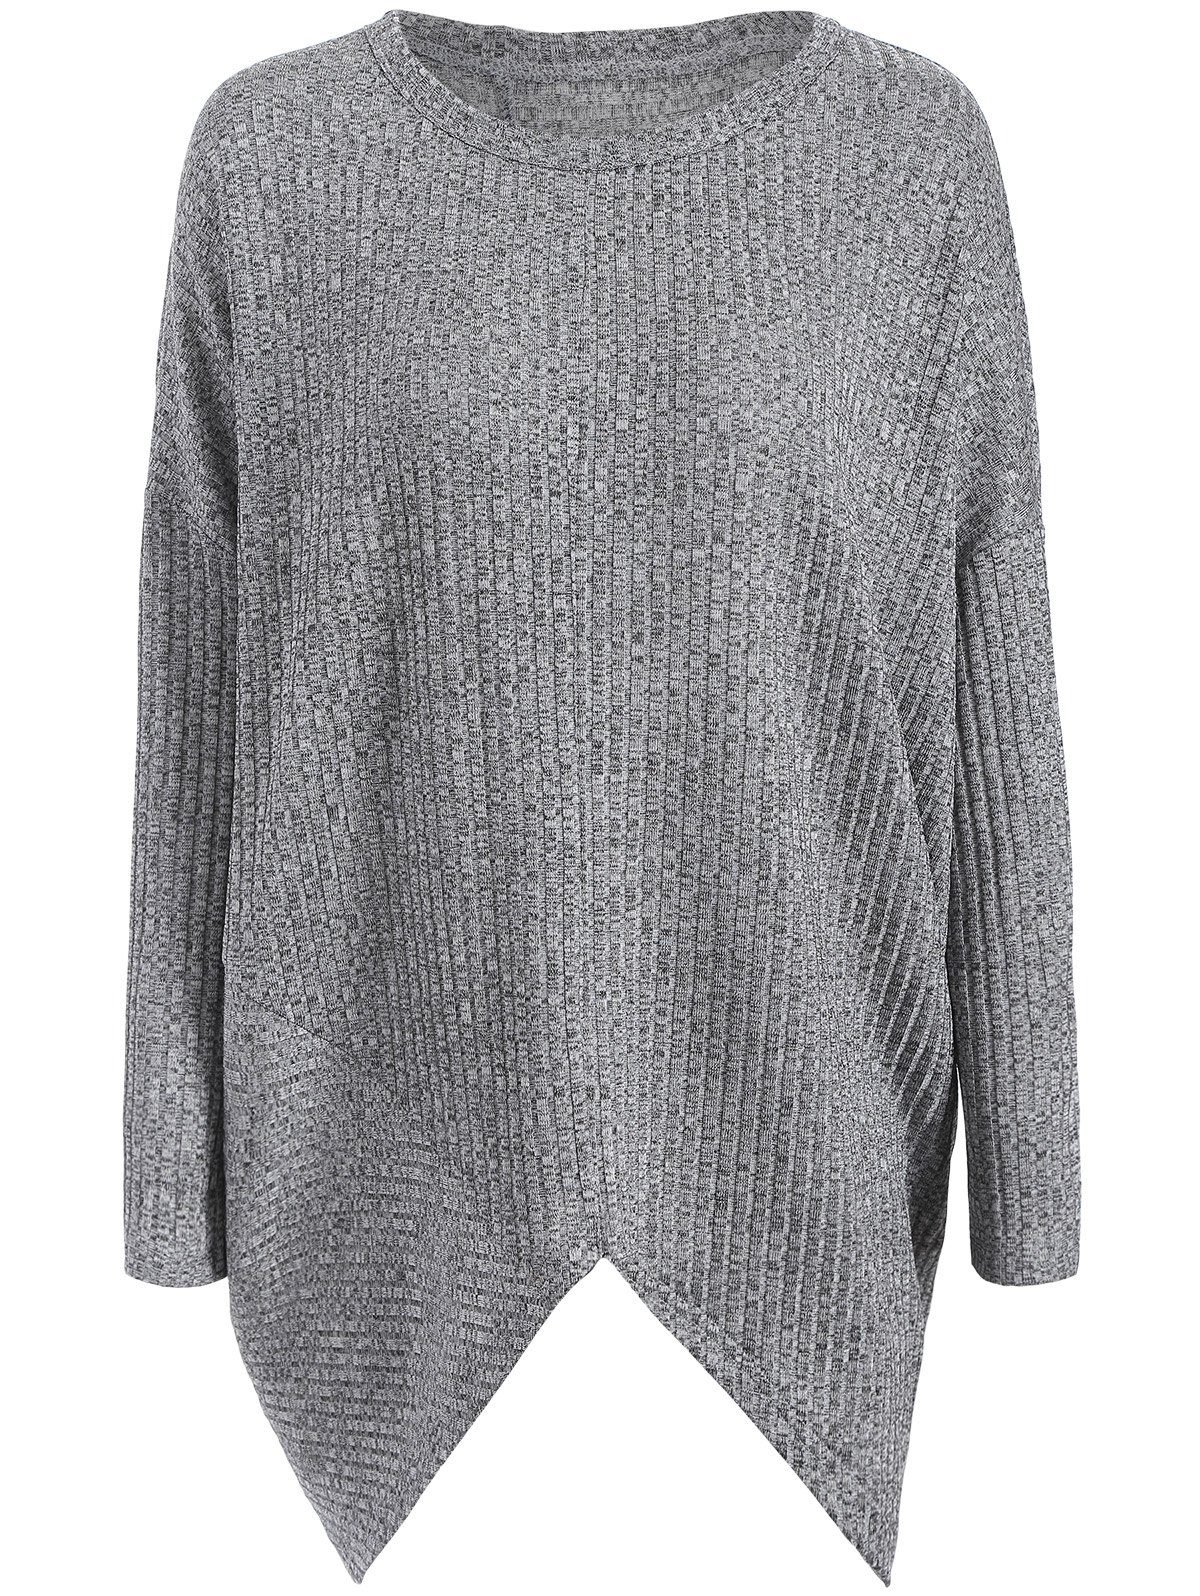 Asymmetrical Ribbed Plus Size Crew Neck Sweater free people new gray women s size medium m ribbed cowl neck sweater $128 035